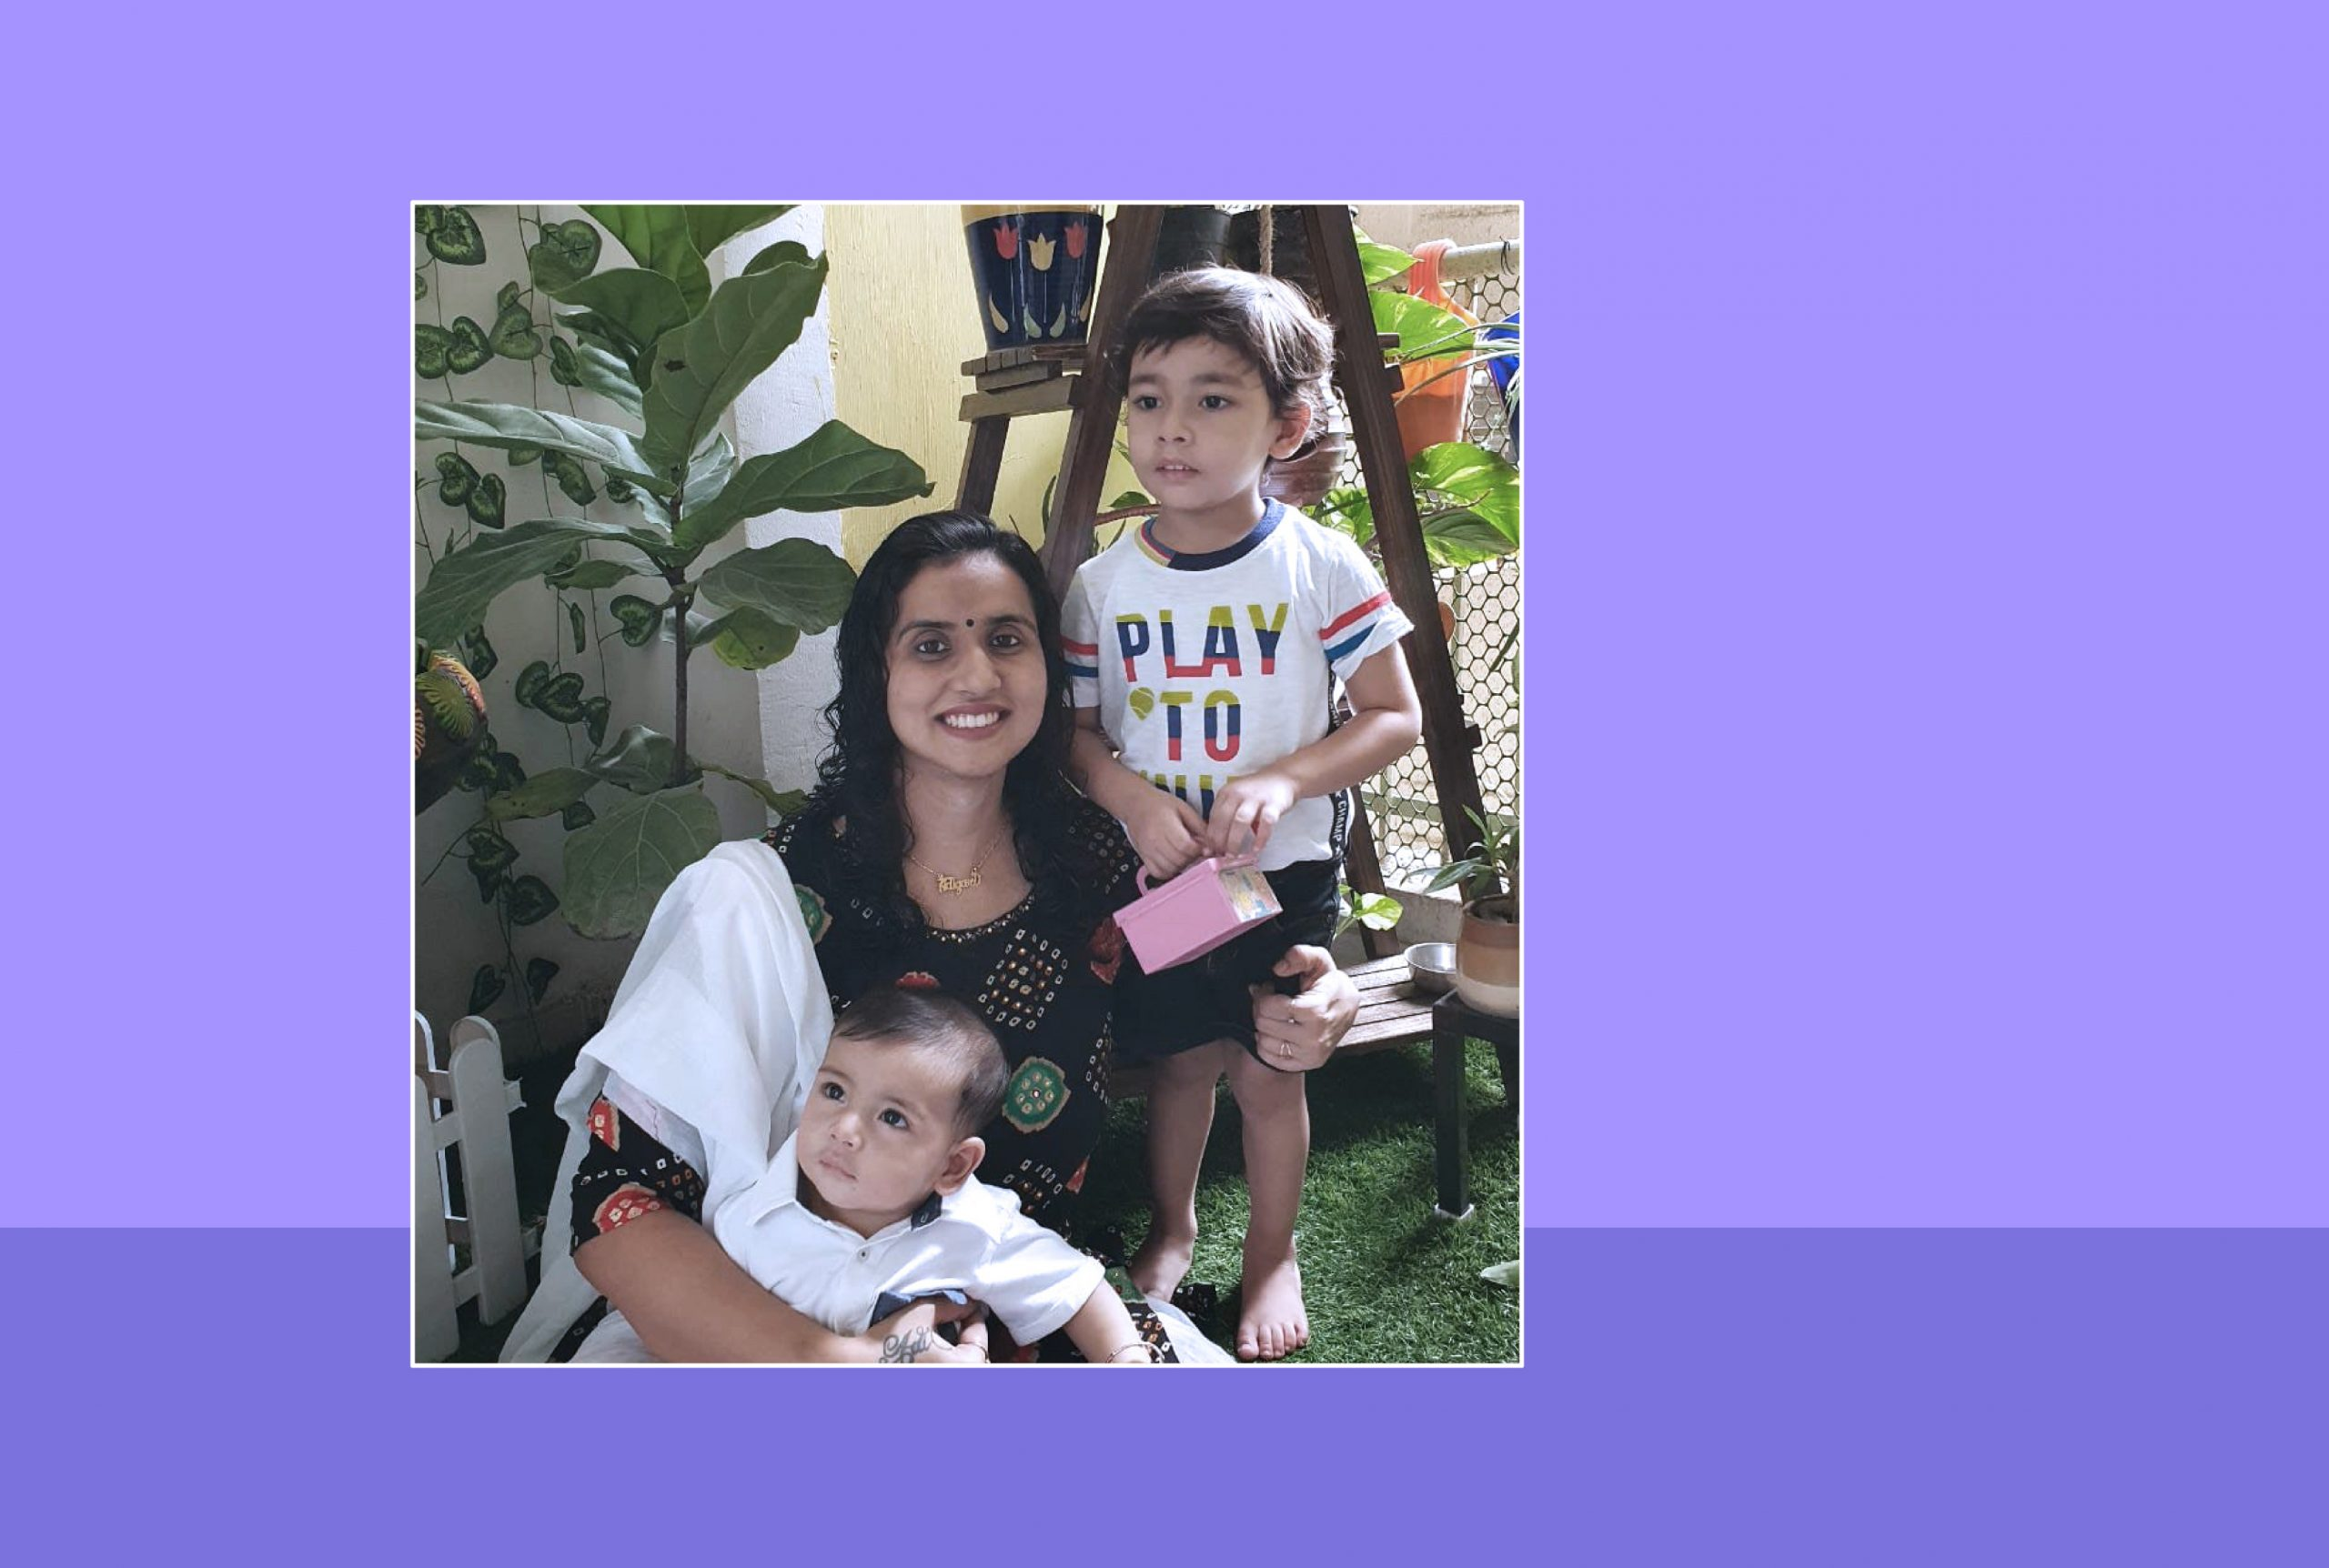 Image of Garima Sharma and her two sons